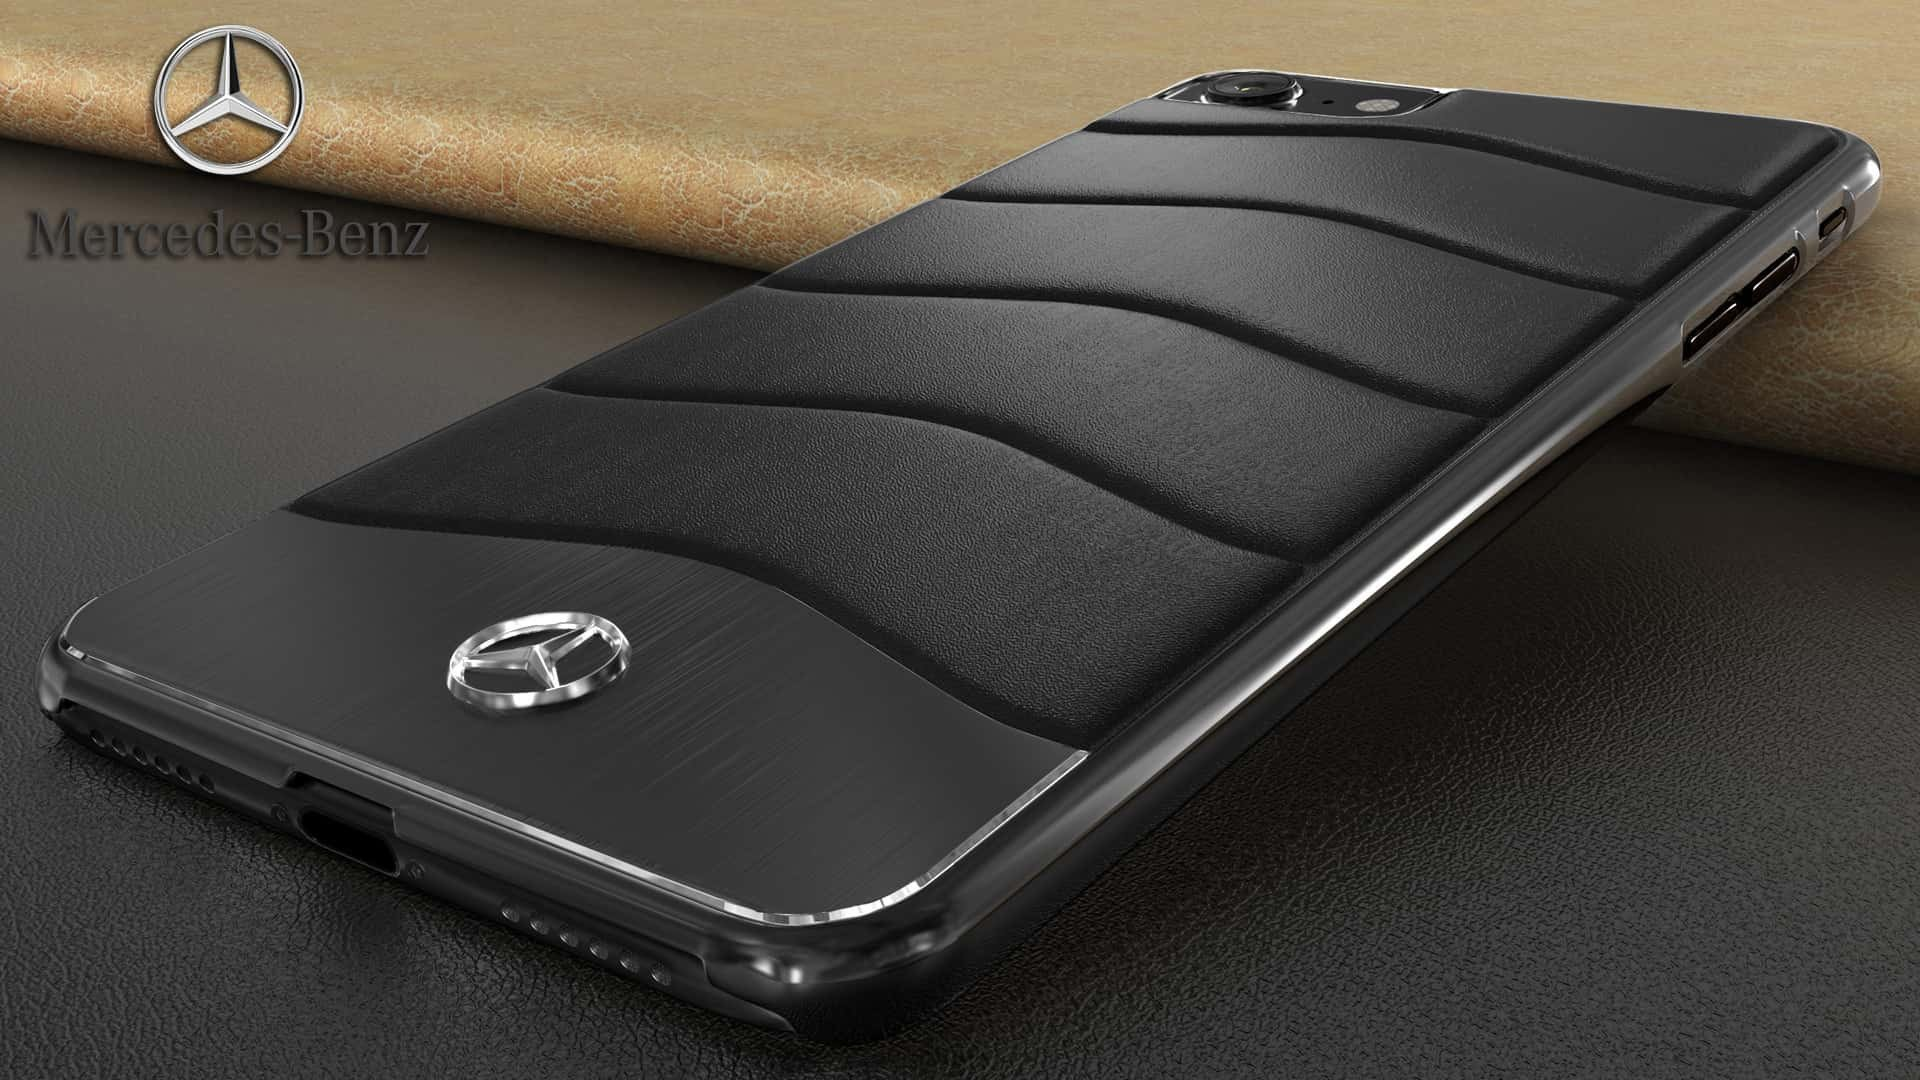 custodia iphone 7 mercedes